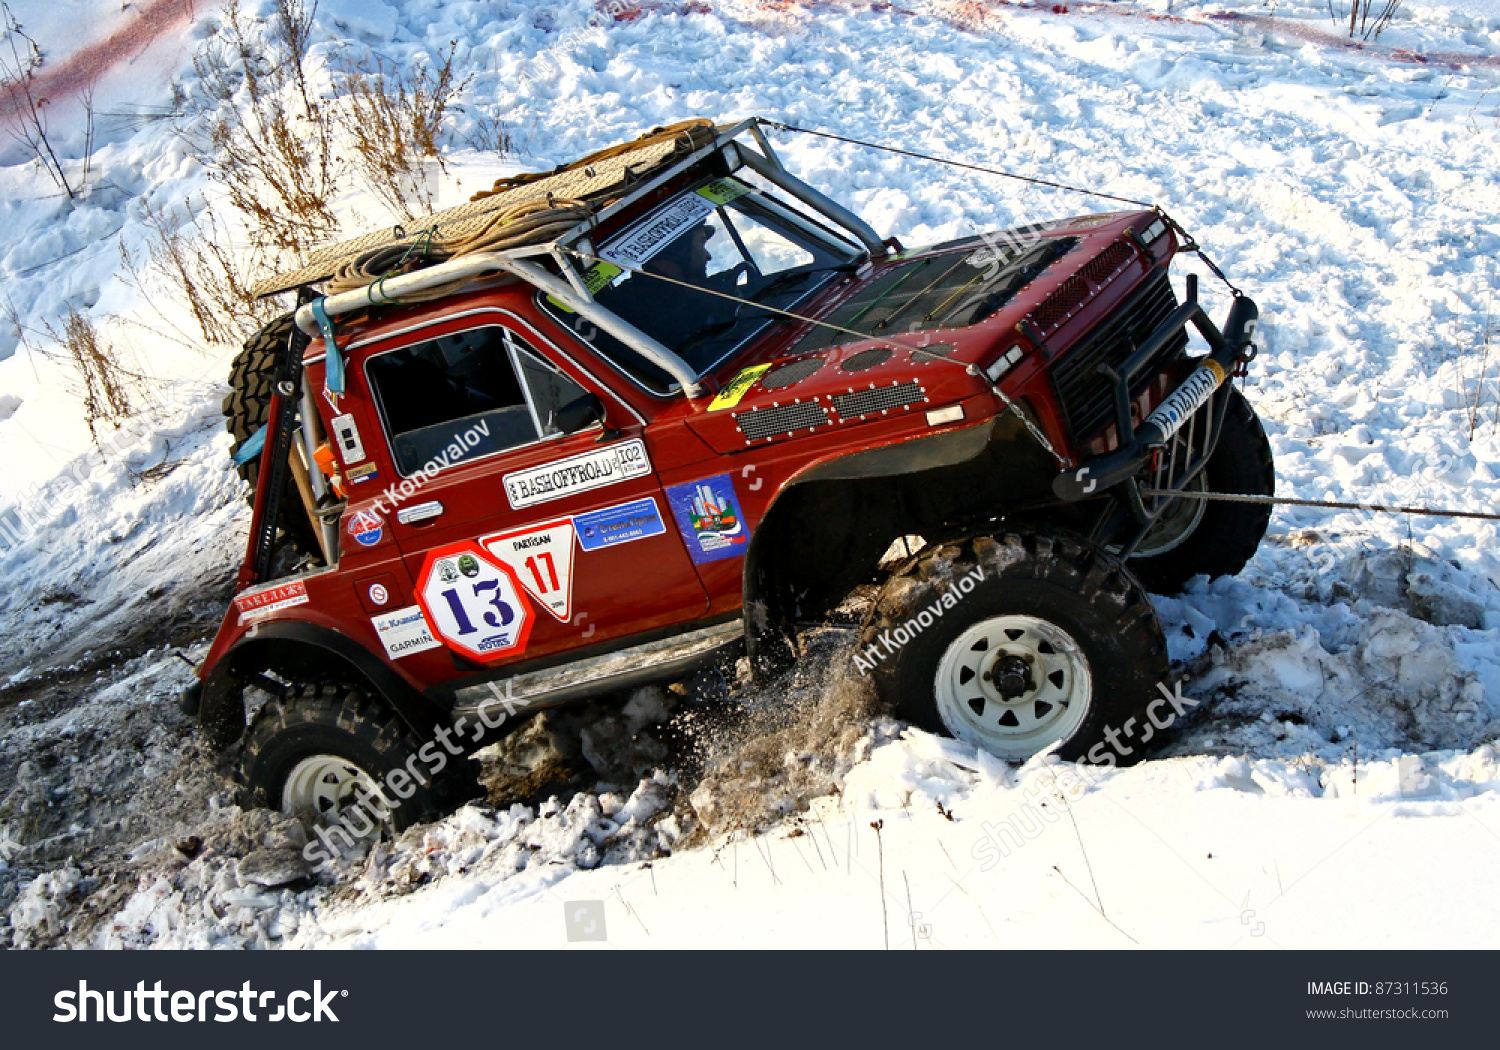 ufa russia december 18 offroad vehicle stock photo. Black Bedroom Furniture Sets. Home Design Ideas